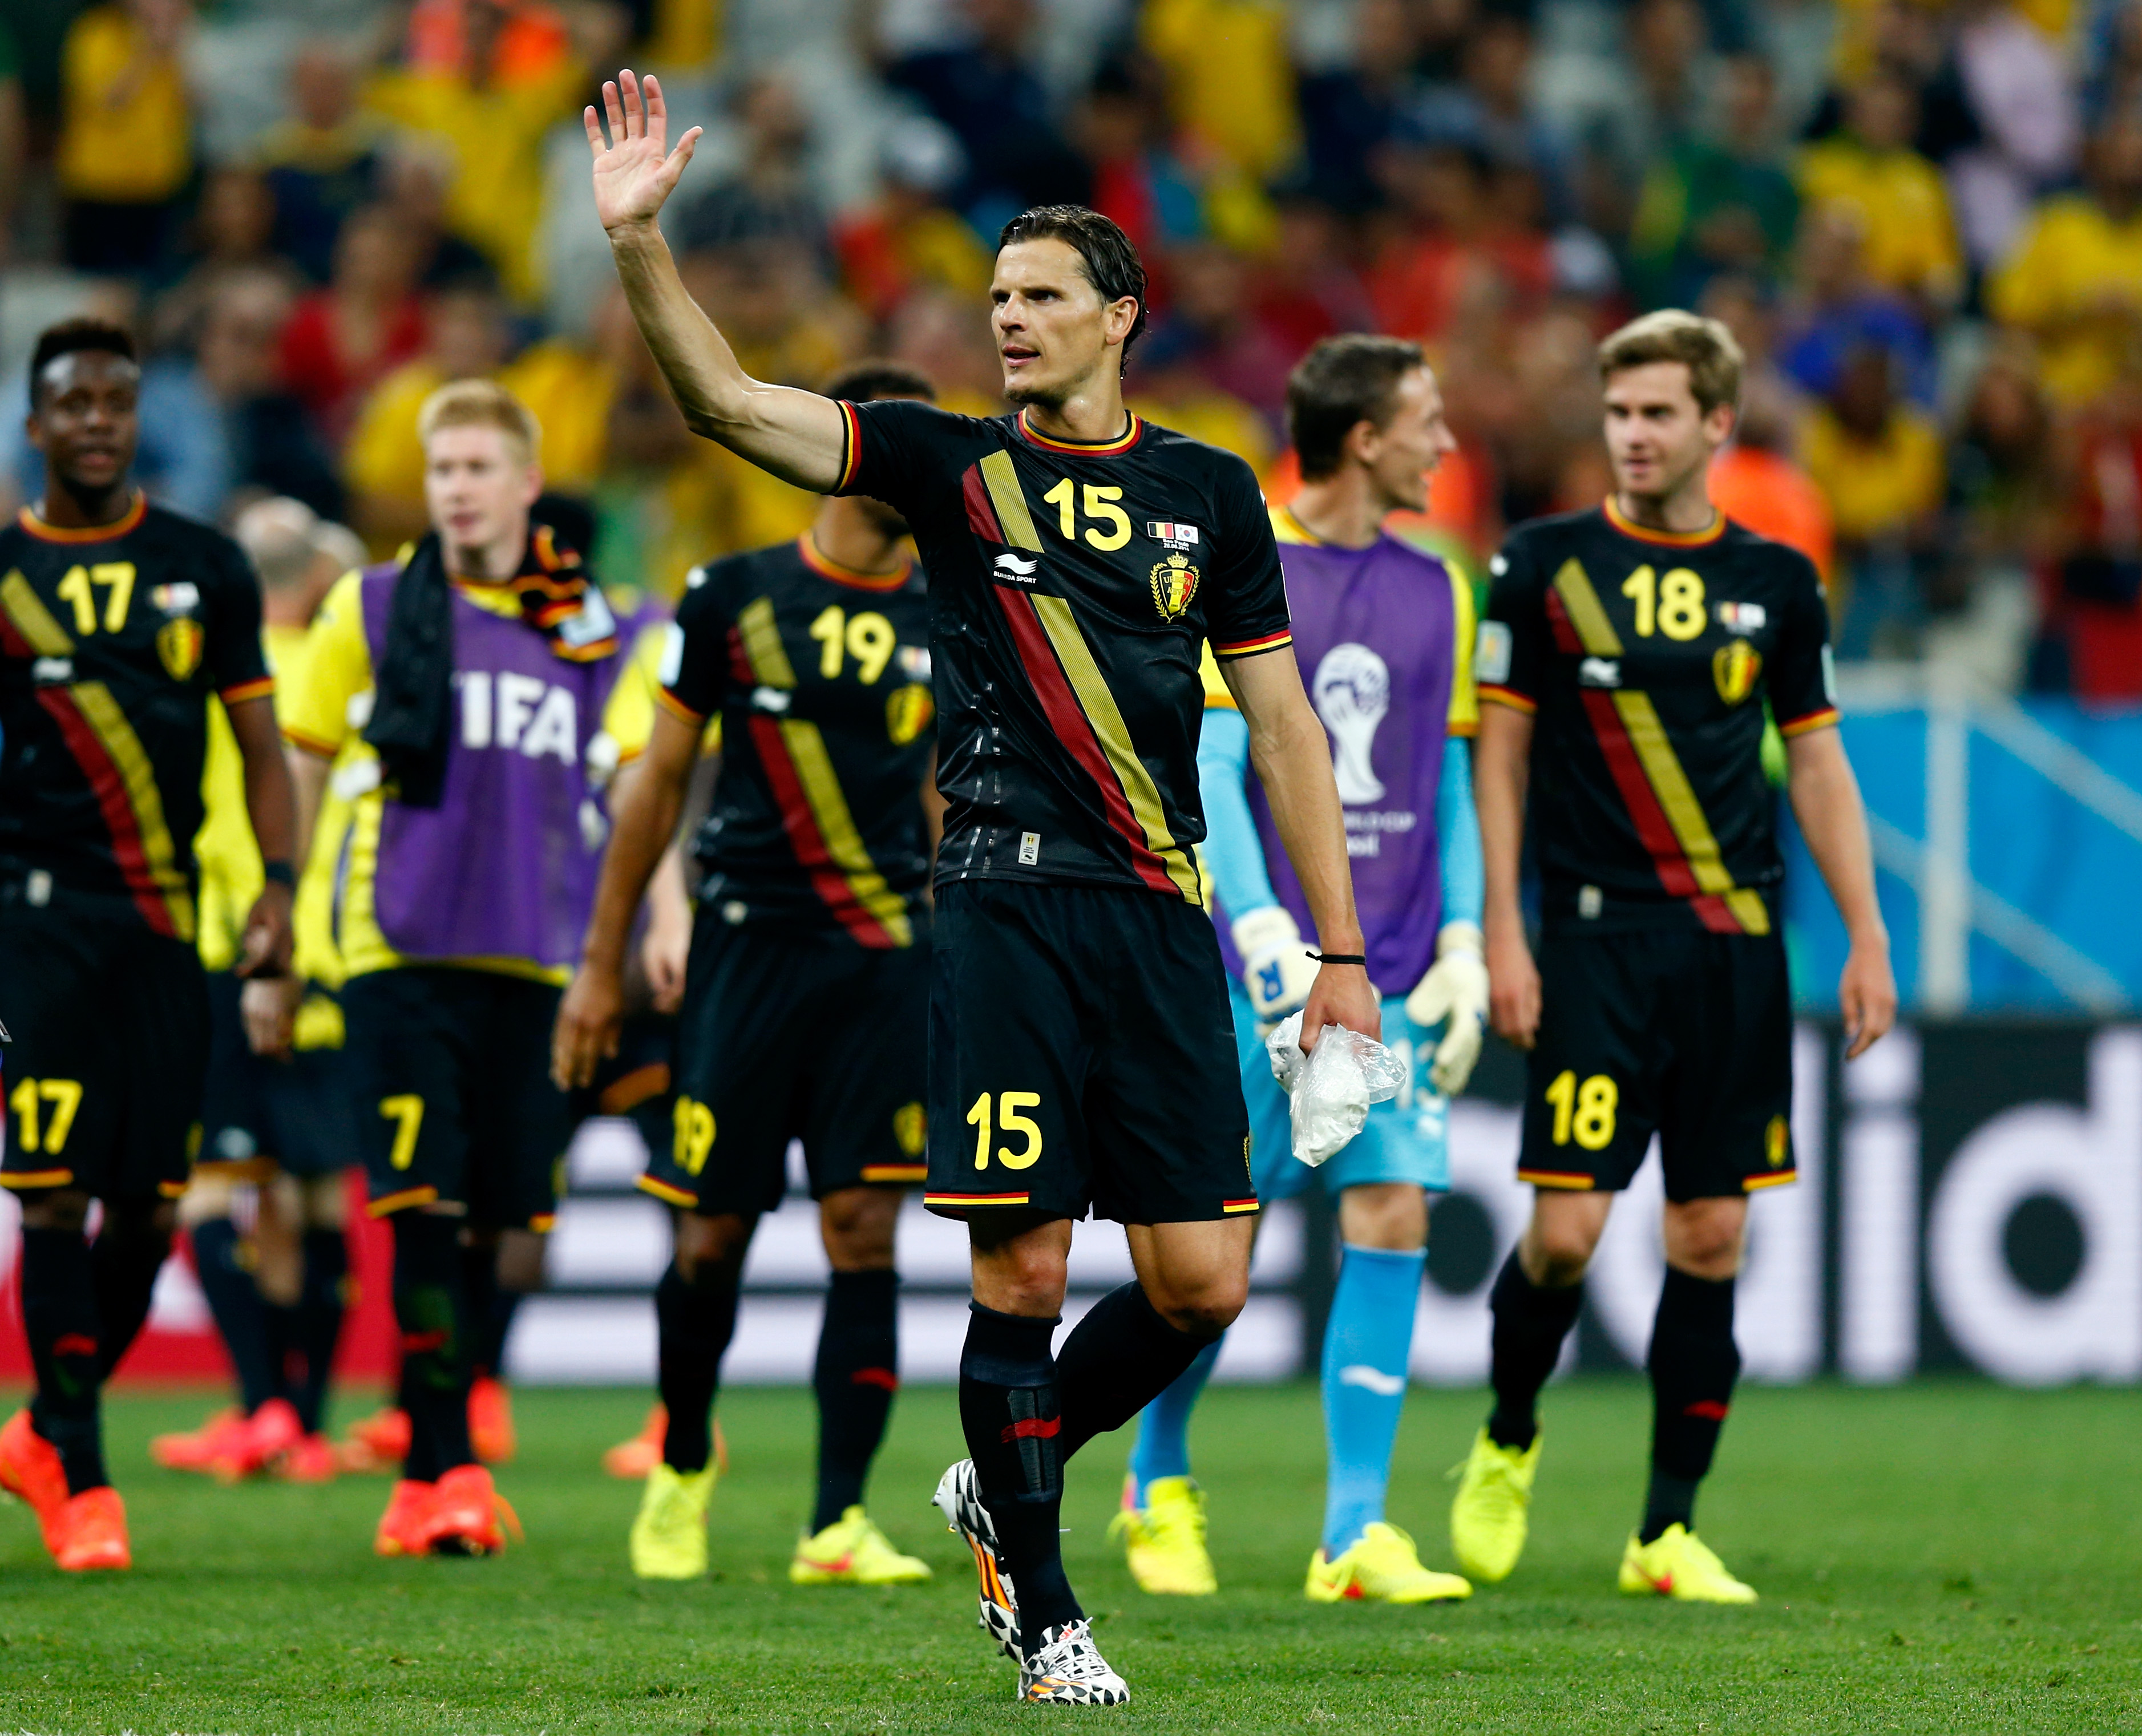 Daniel Van Buyten of Belgium acknowledges the fans after a 1-0 victory in a 2014 FIFA World Cup Brazil match against South Korea on June 26 in Sao Paulo, Brazil.